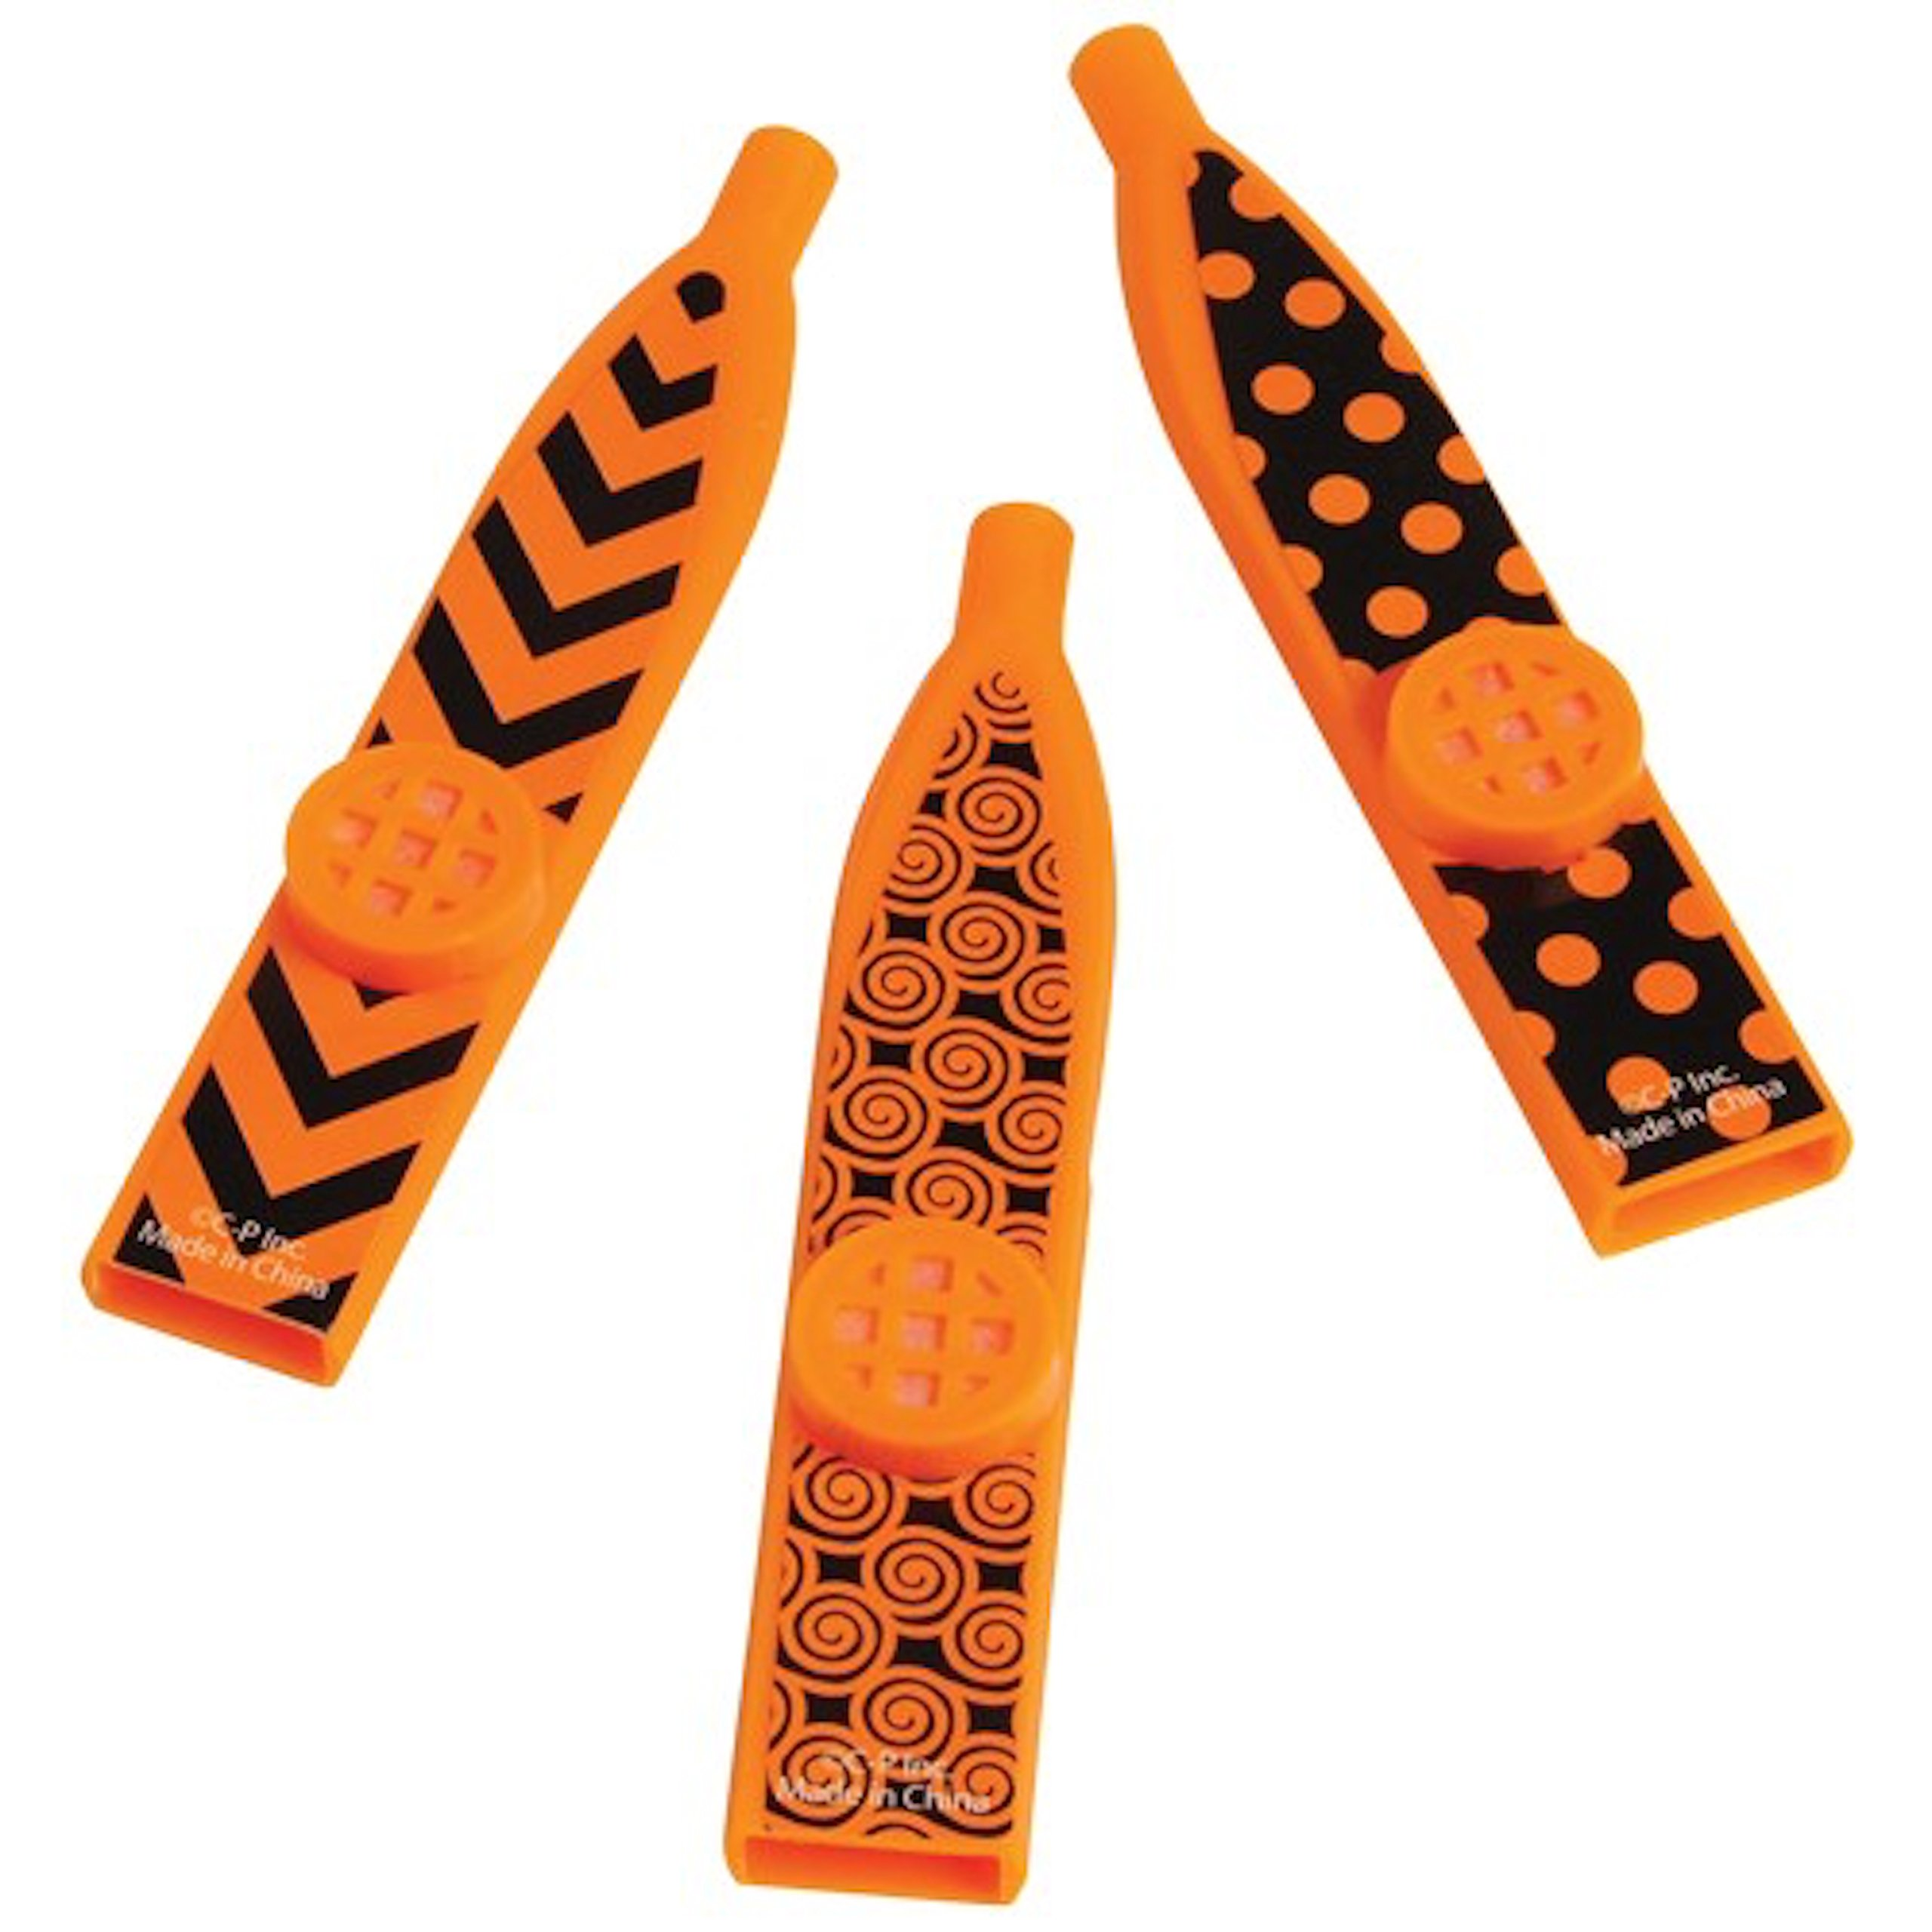 US Toy Assorted Candy Corn Halloween Theme Black And Orange Toy Kazoo Party Favors - Pack of 6 by U.S. Toy